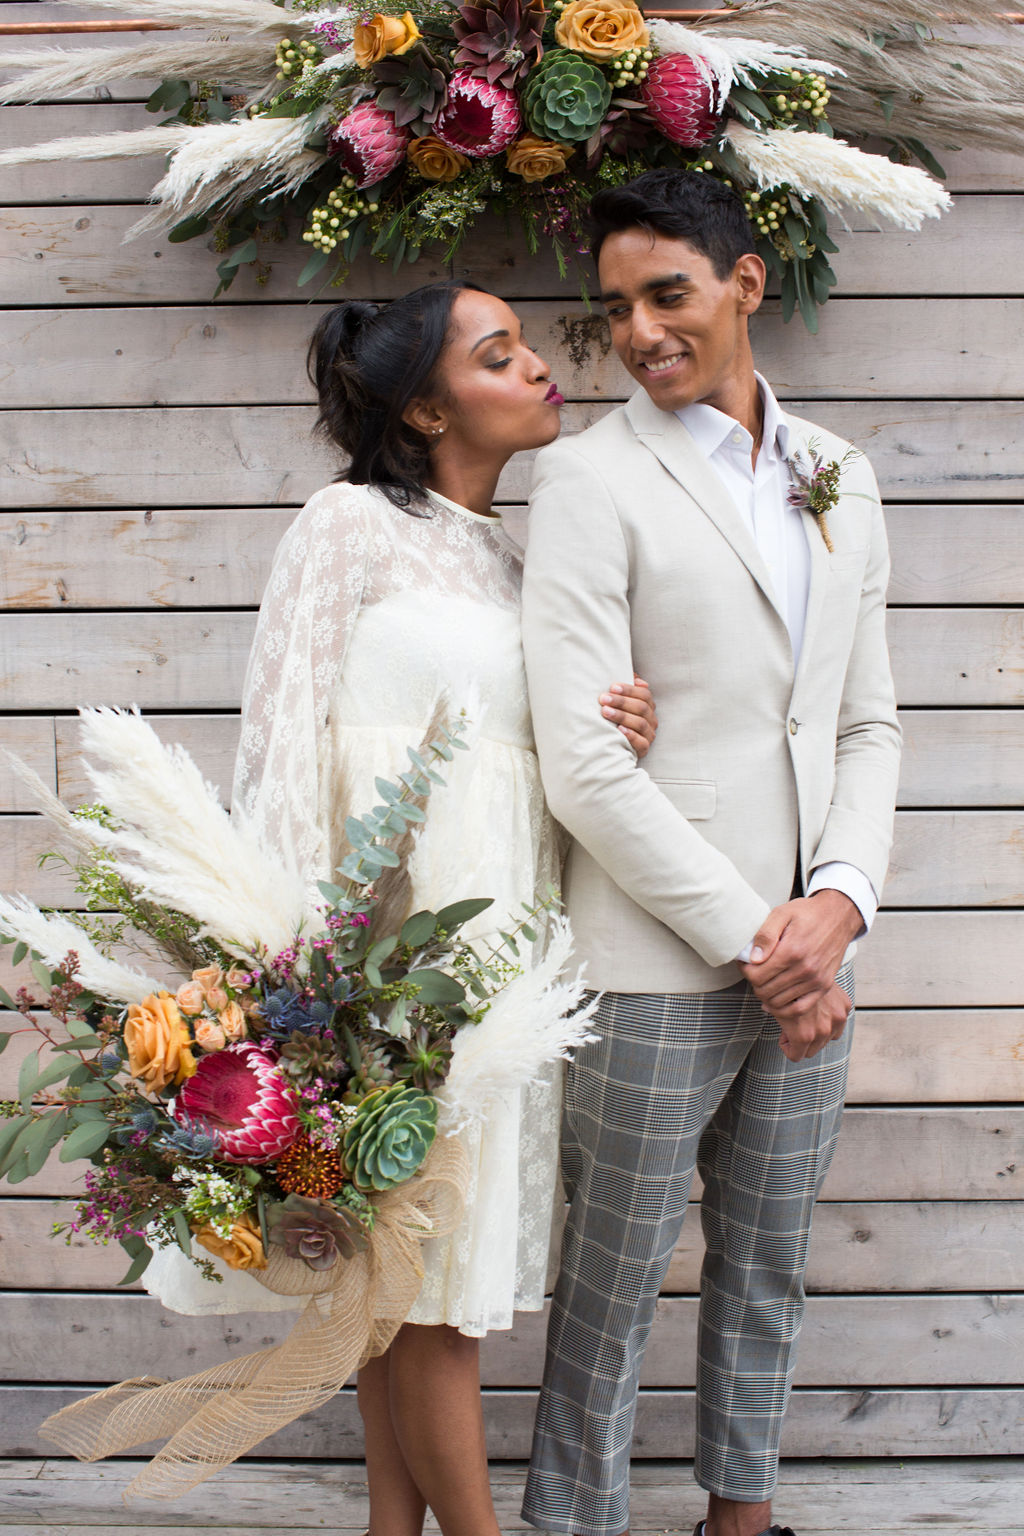 Boho long-sleeved weddng dress second-hand wedding dress floral by Succulents for Hire